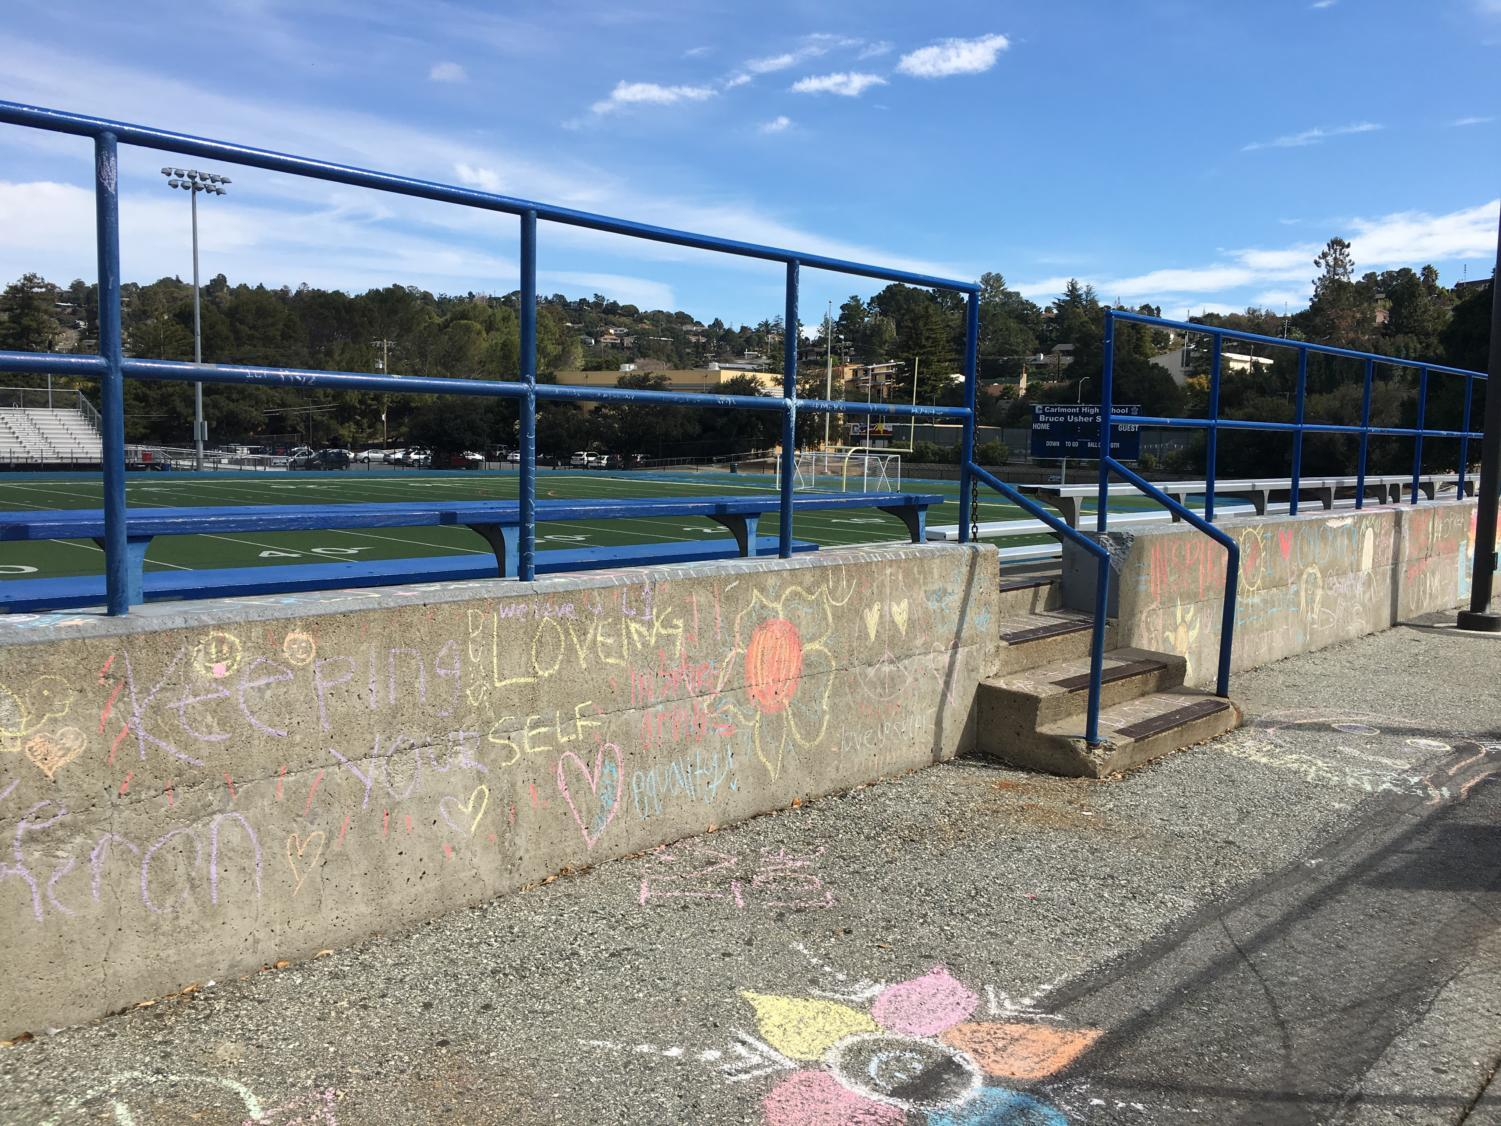 The chalk wall provides a fun and relaxing atmosphere at Calrmont.